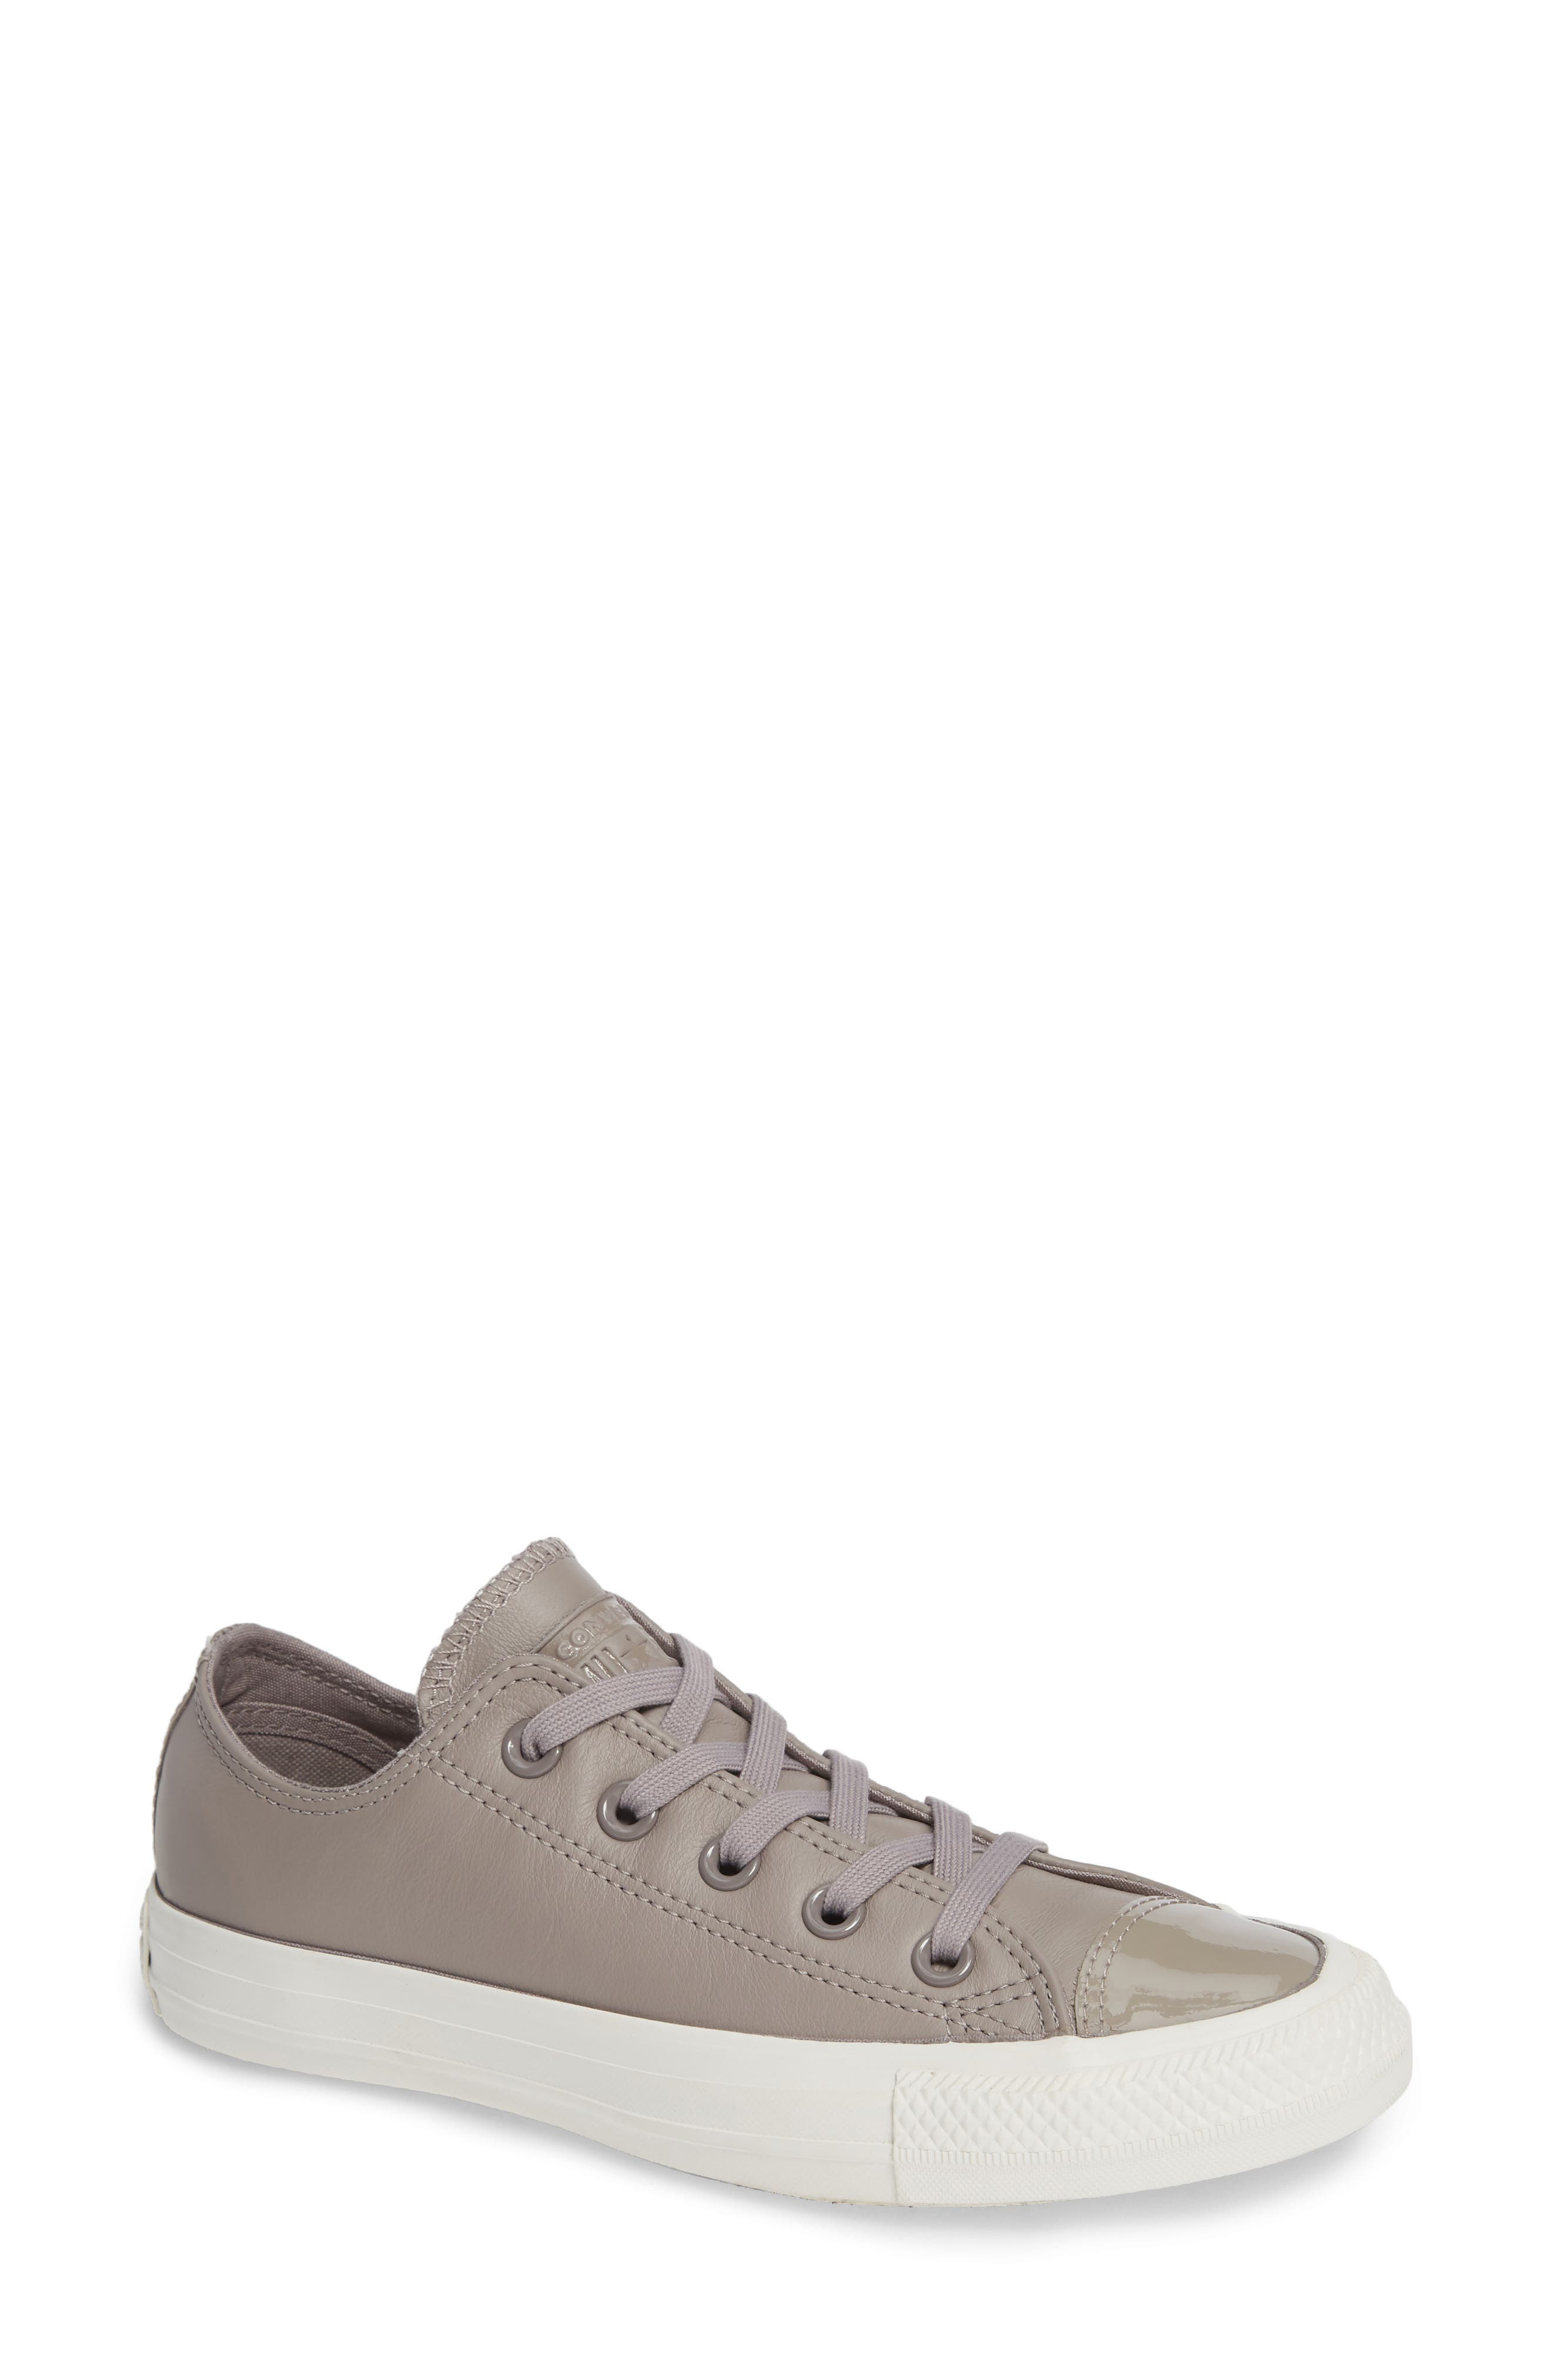 CONVERSE,                             All Star<sup>®</sup> Leather Patent Low Top Sneaker,                             Main thumbnail 1, color,                             020